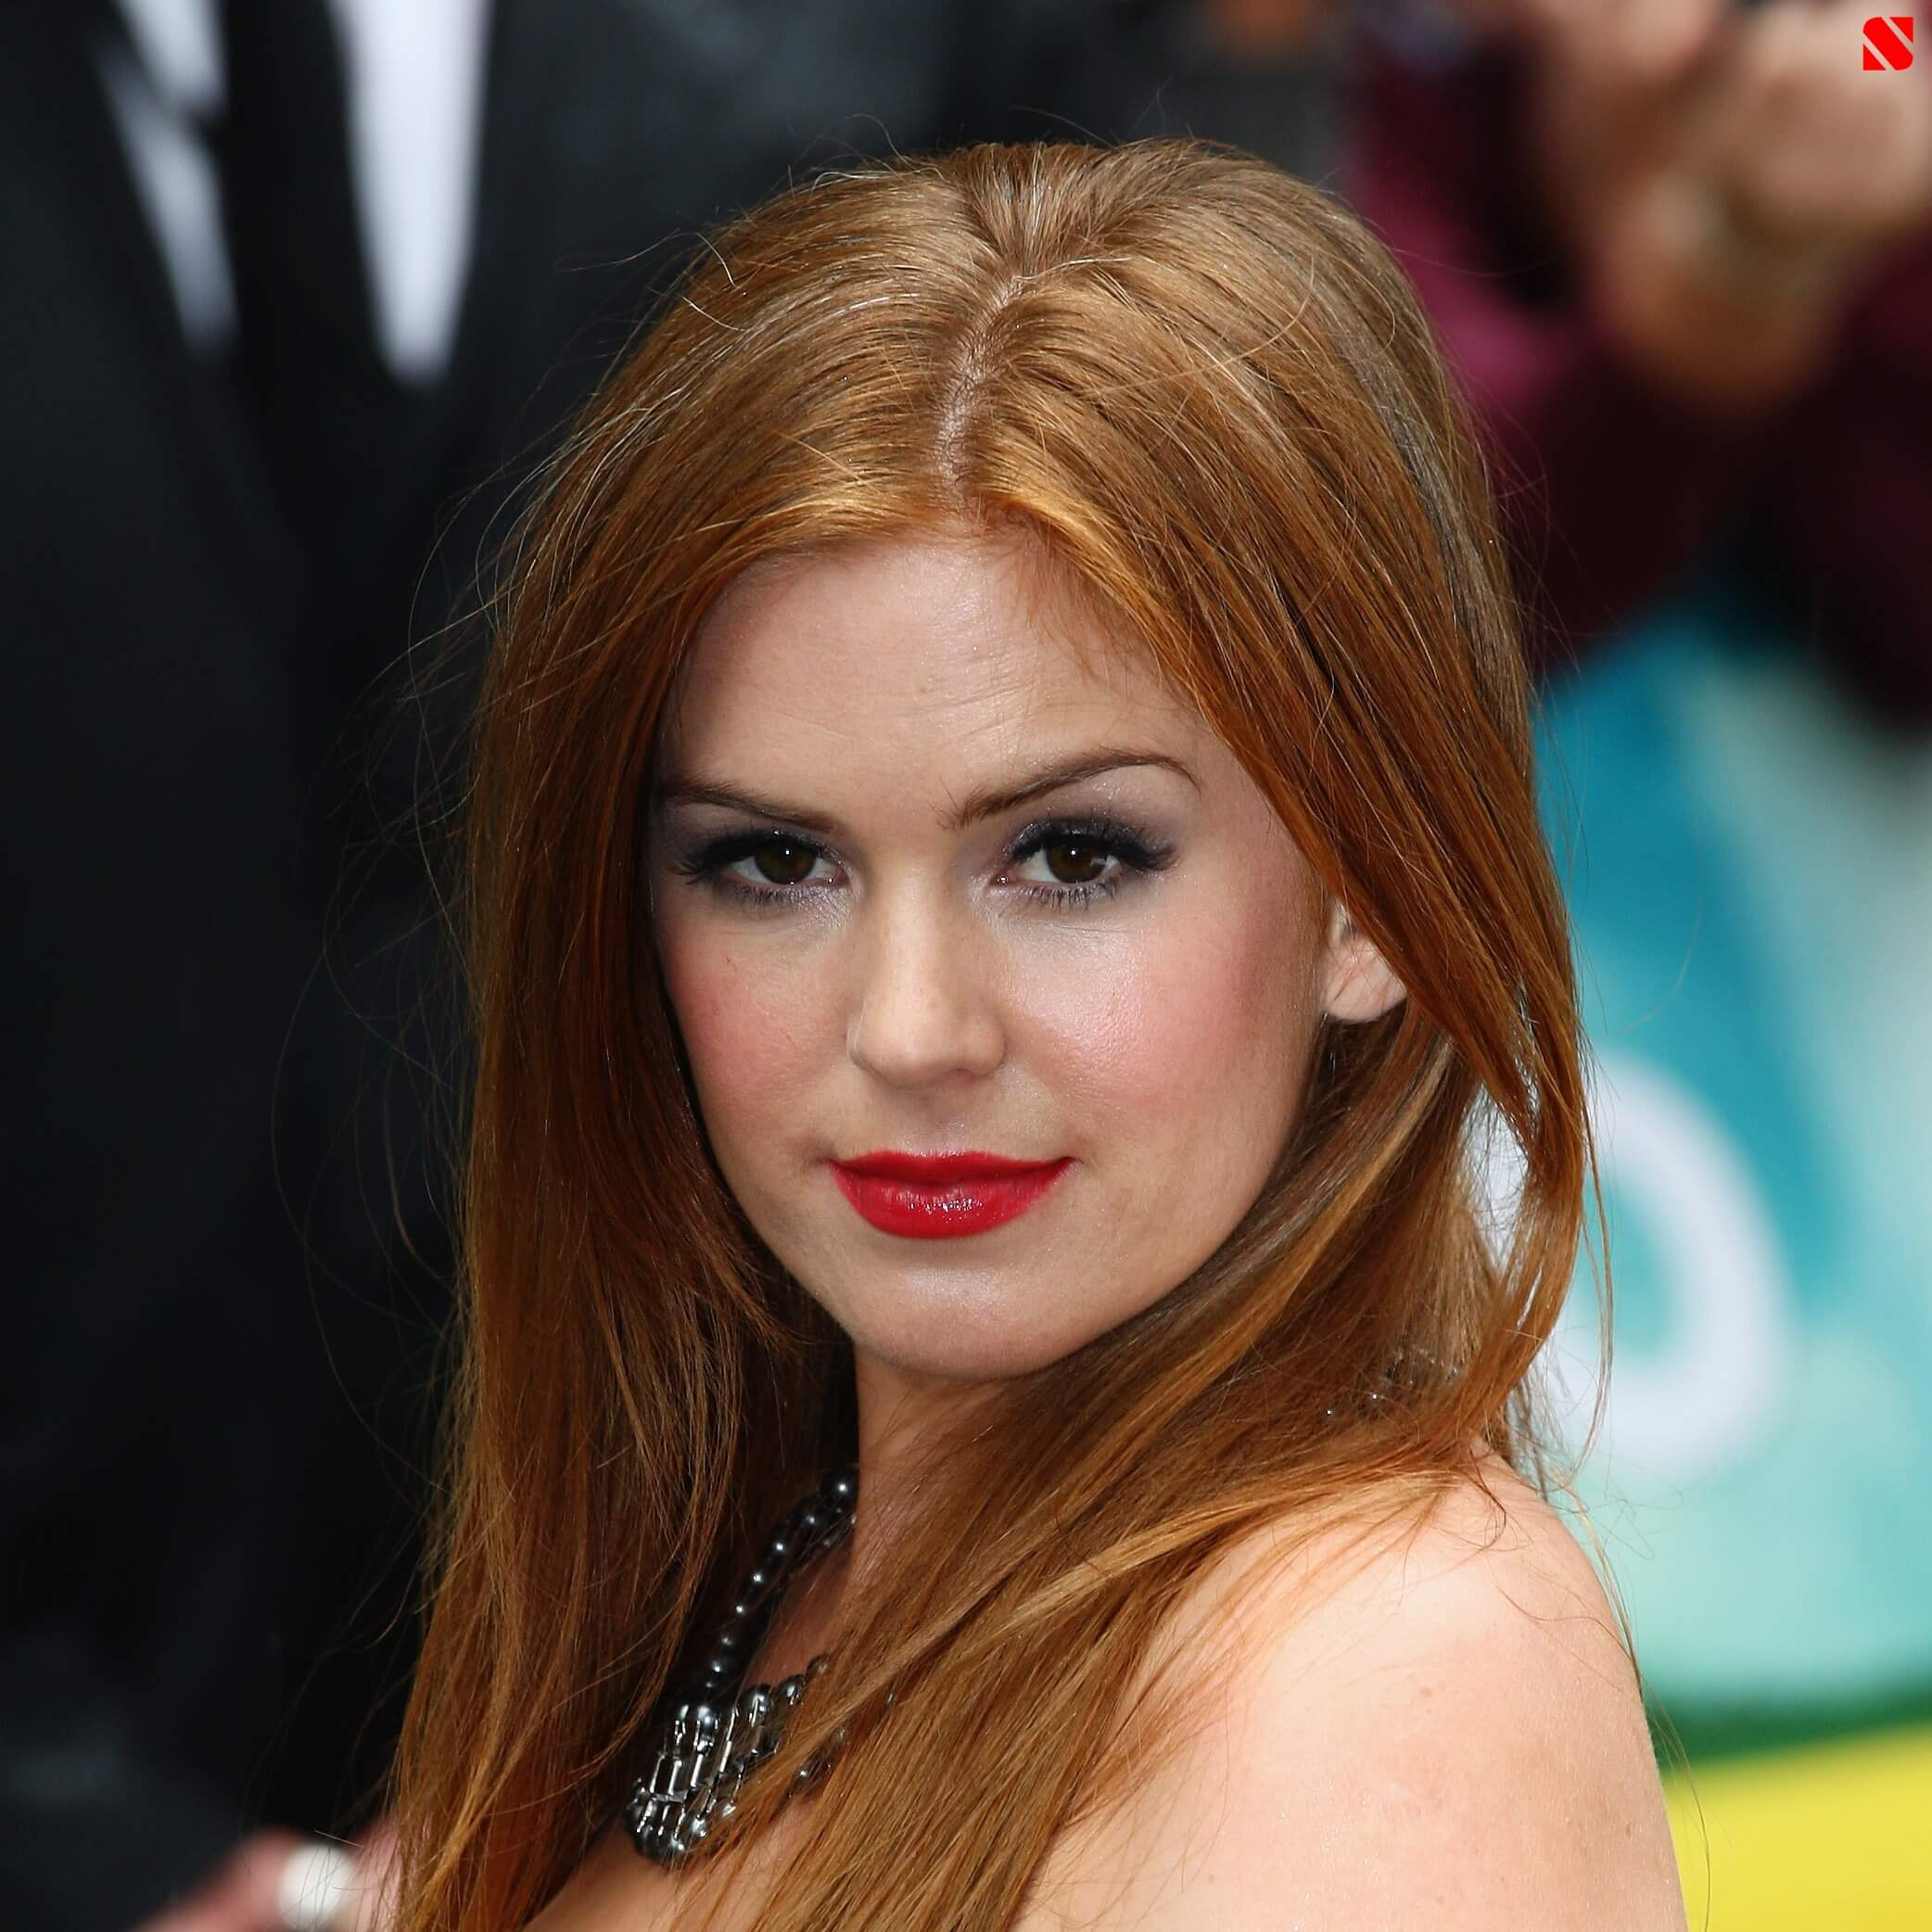 Isla Fisher nude (23 photos), pics Sideboobs, Snapchat, braless 2016